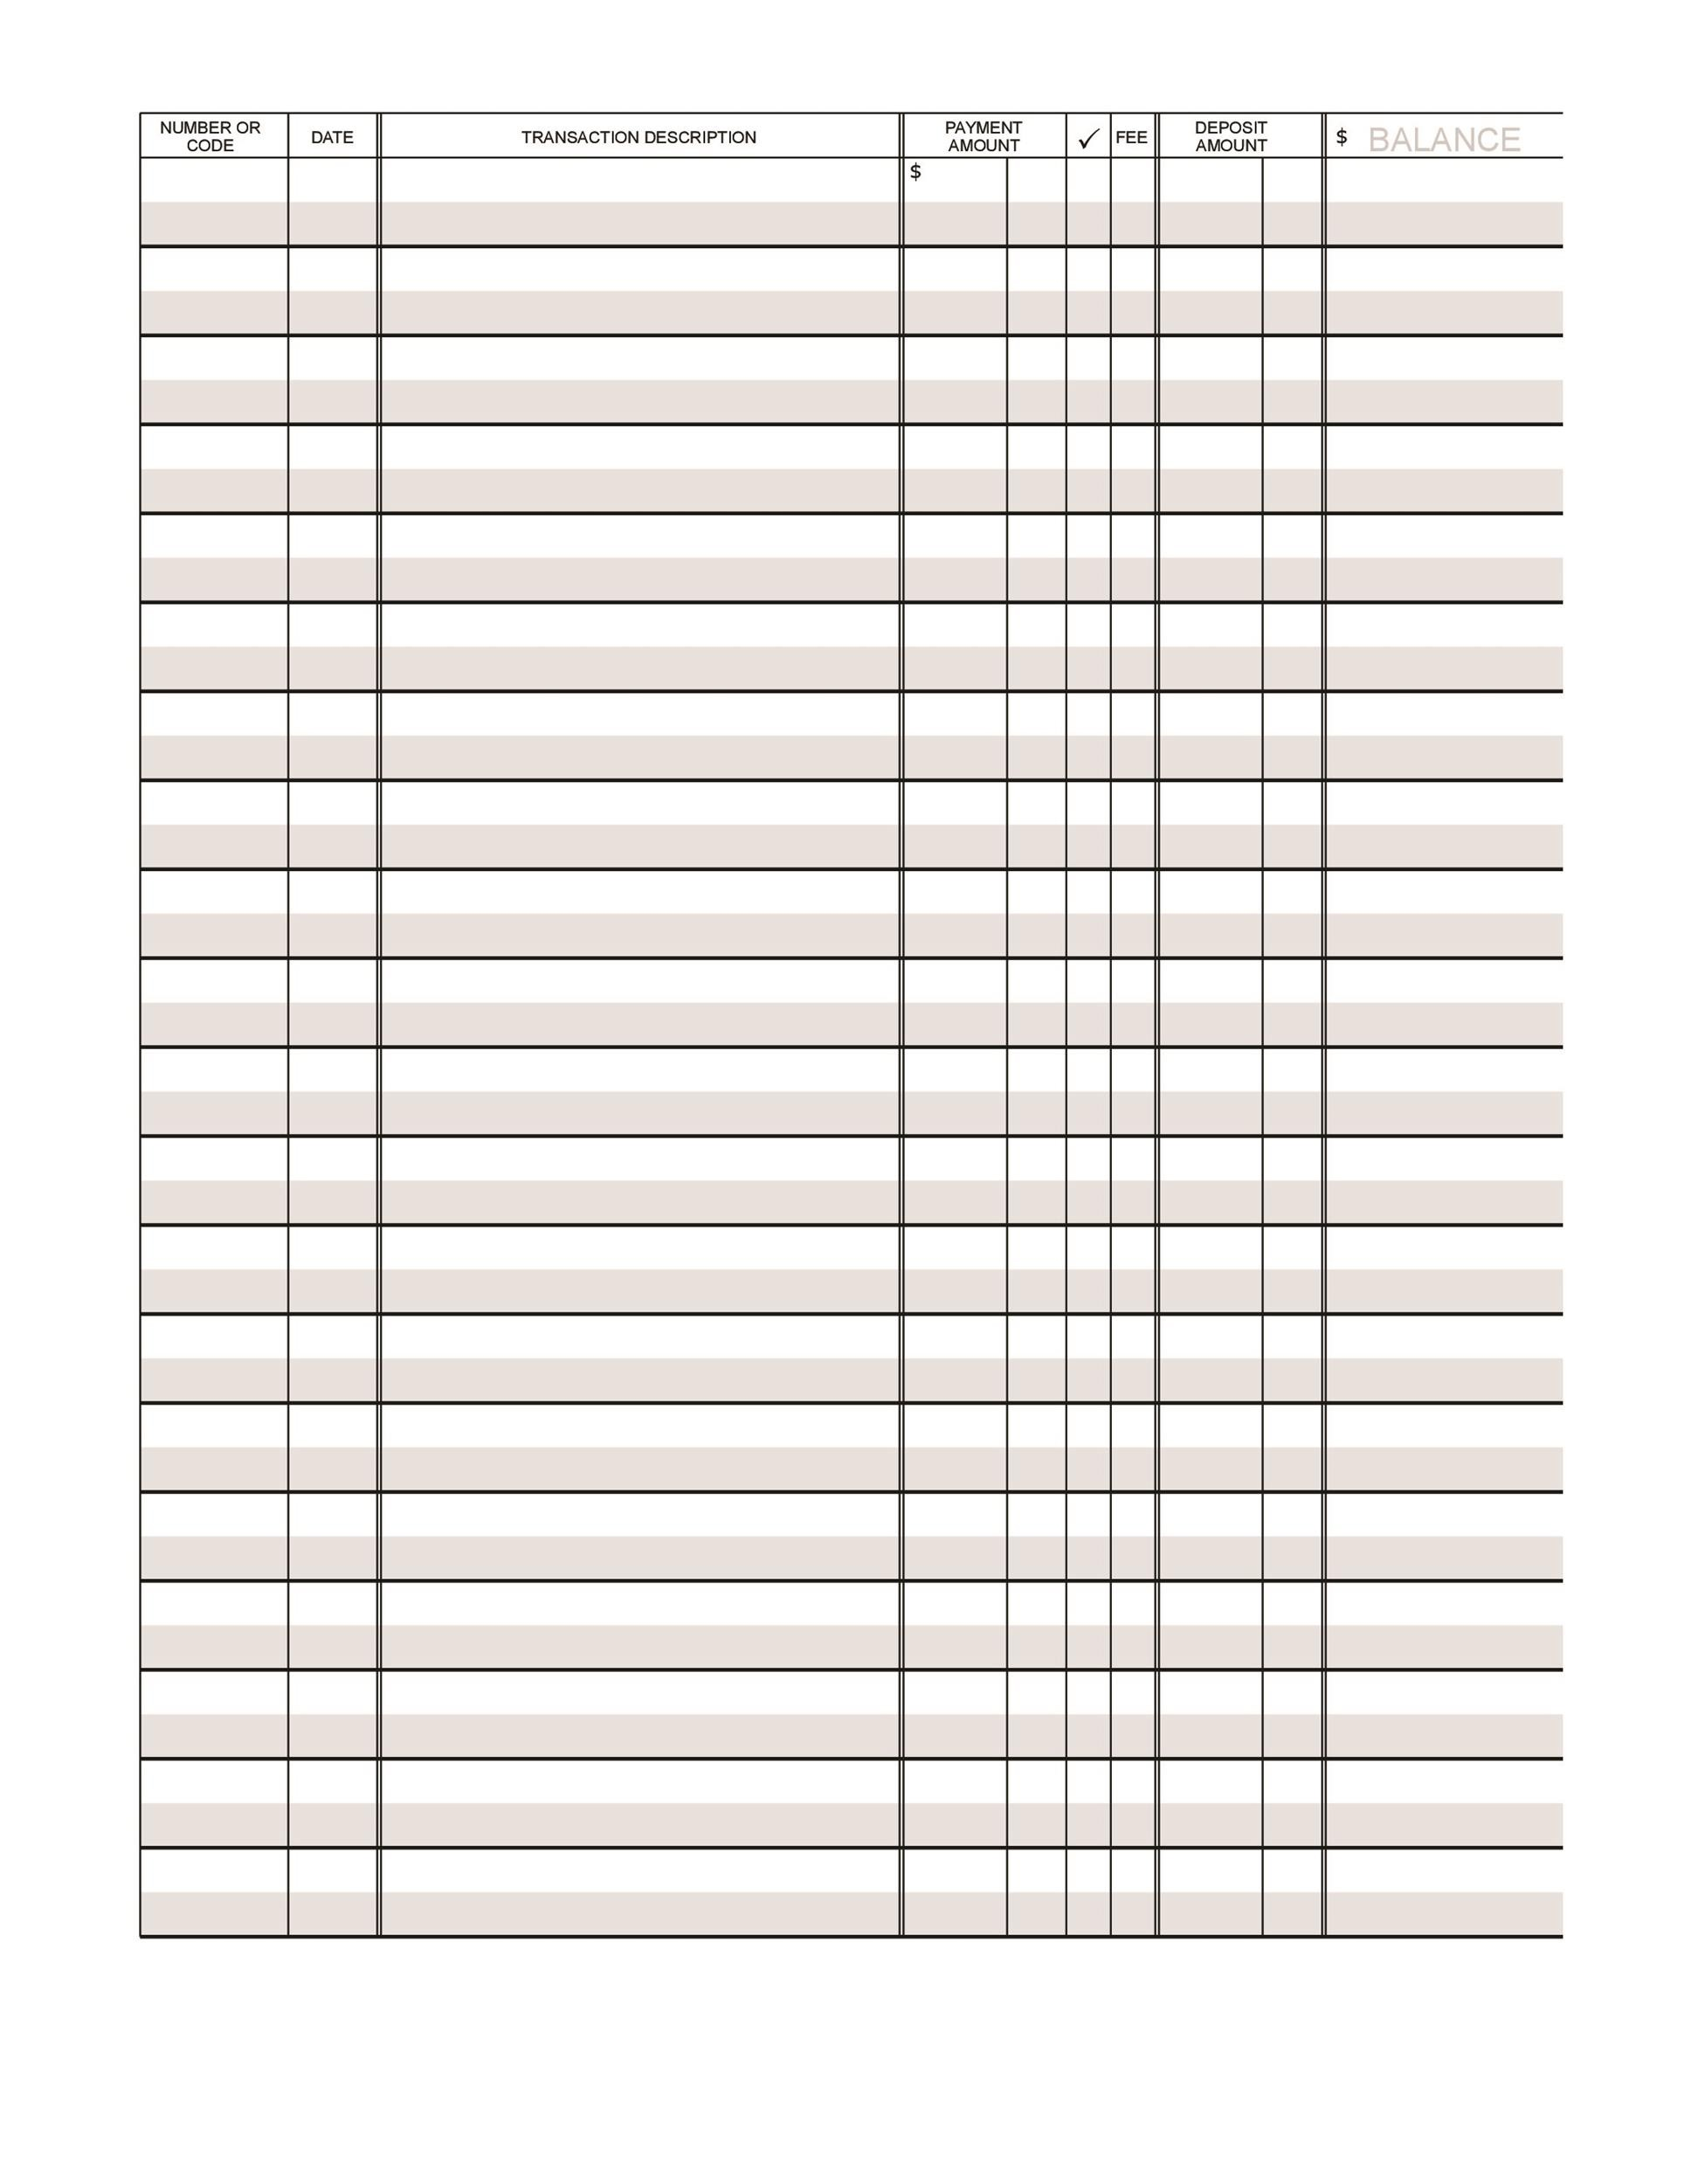 37 Checkbook Register Templates [100% Free, Printable] - Template Lab